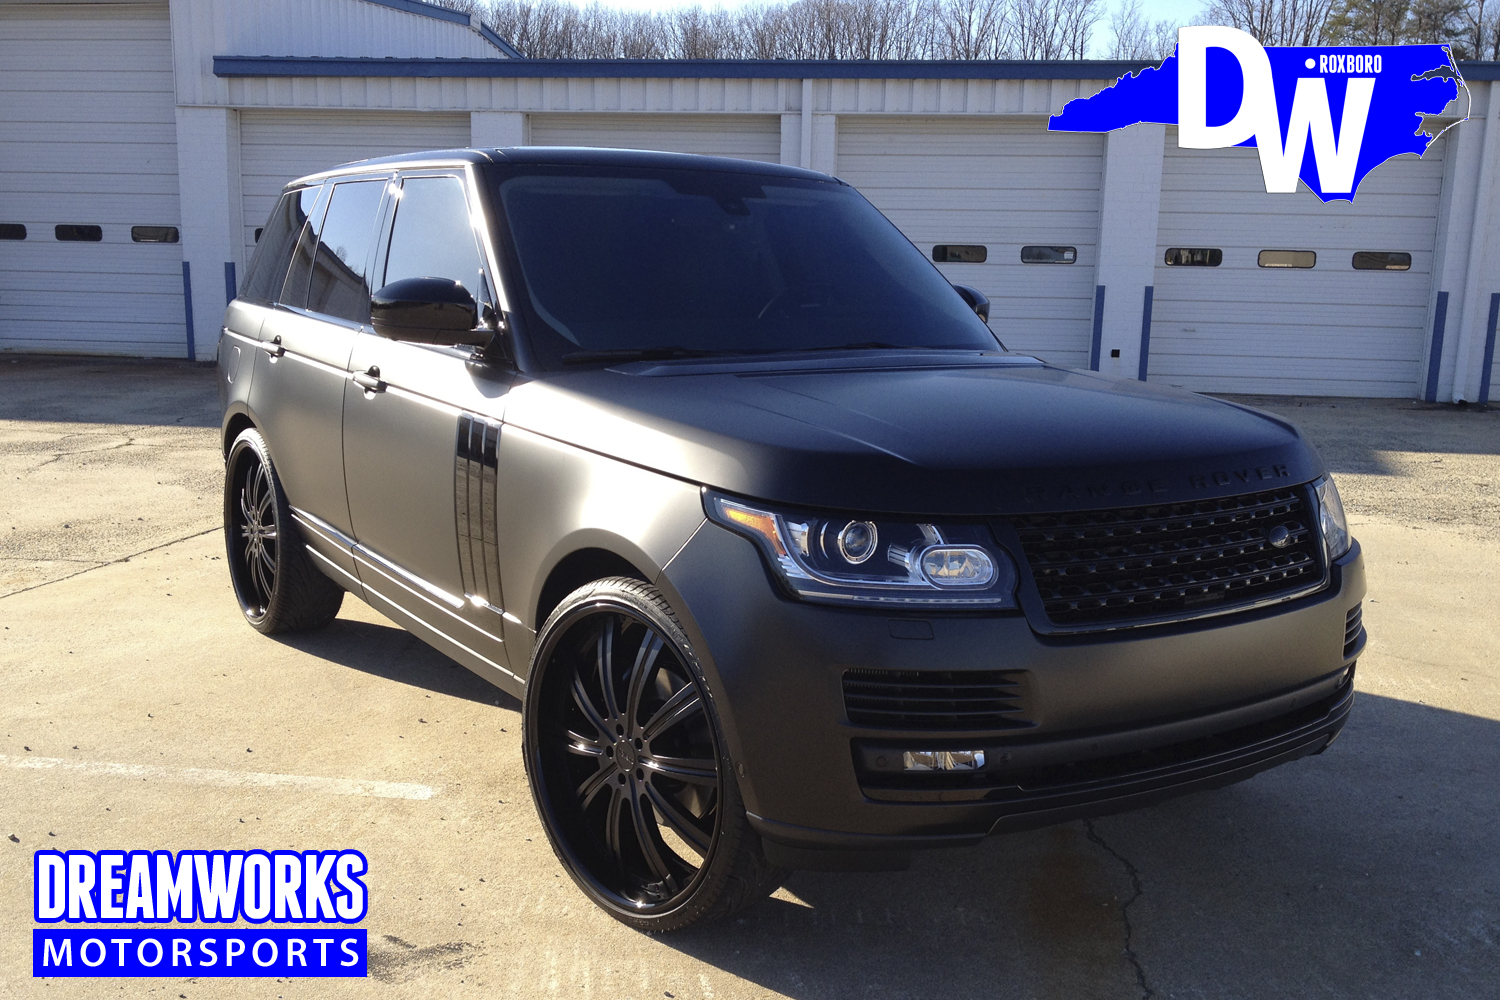 Wesley-Mathews-Range-Rover-Matte-Wrapped-By-Dreamworks-Motorsports-11.jpg